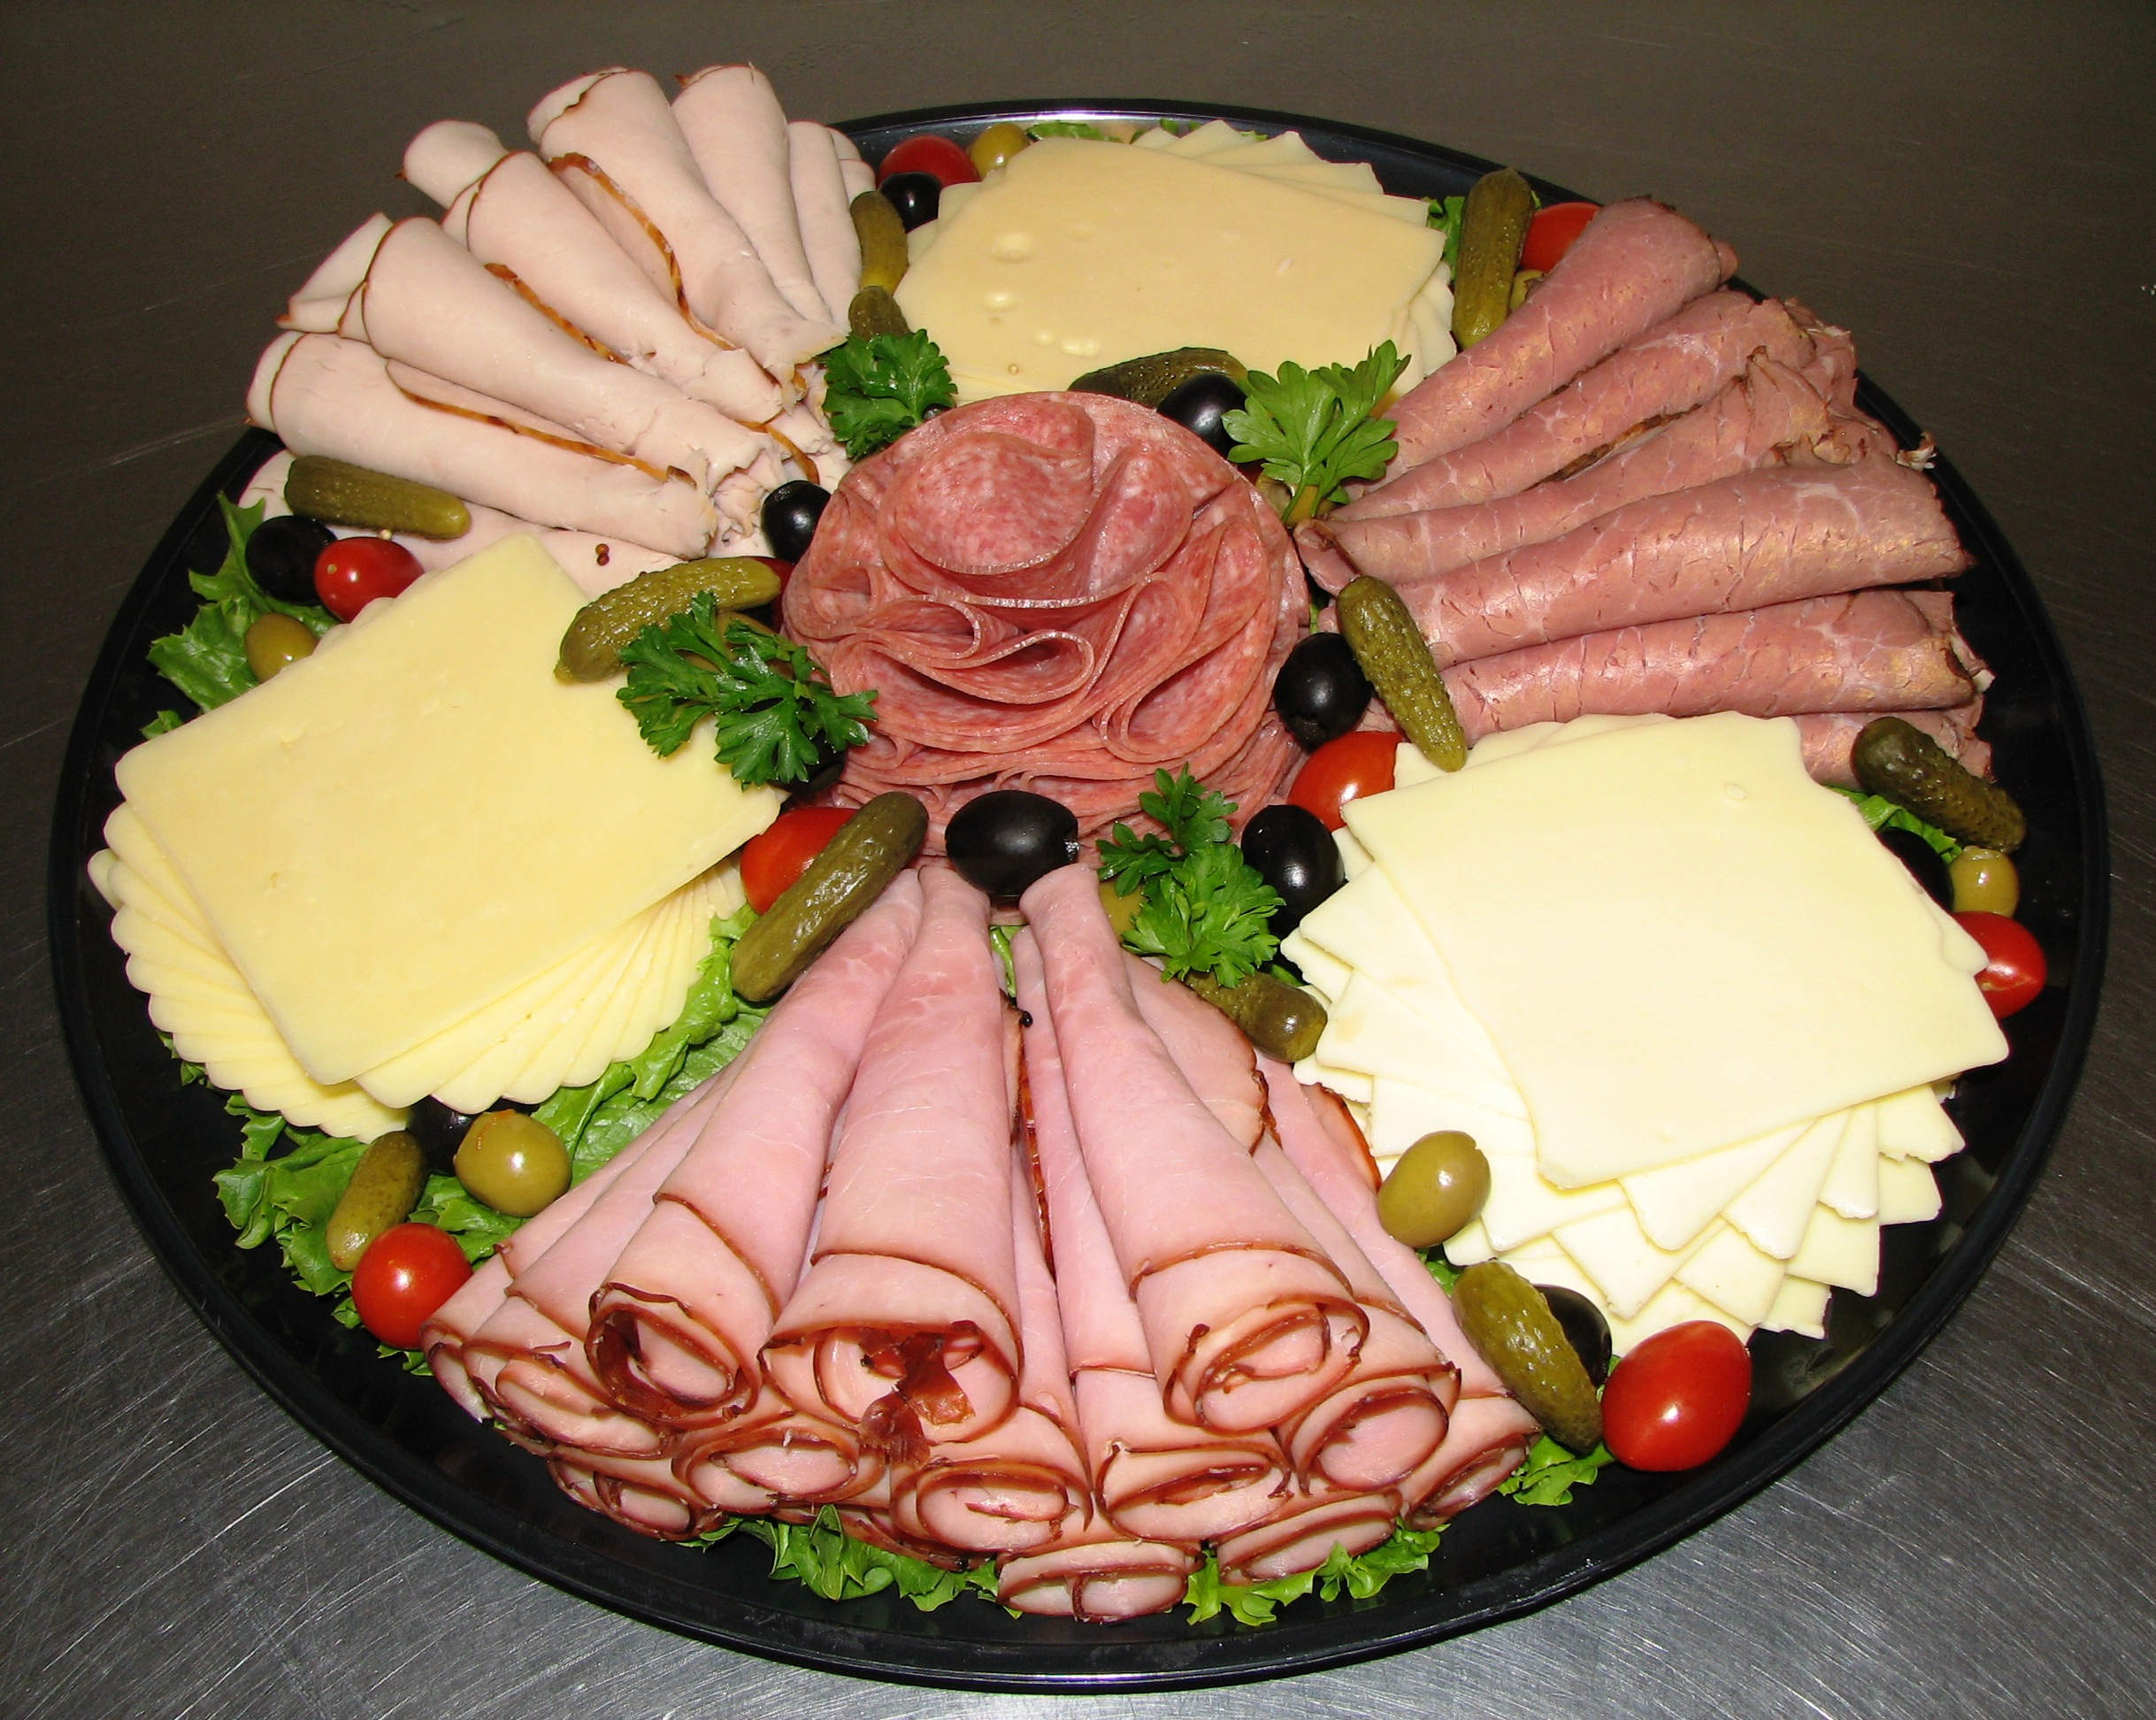 Atkins Farms Departments Catering